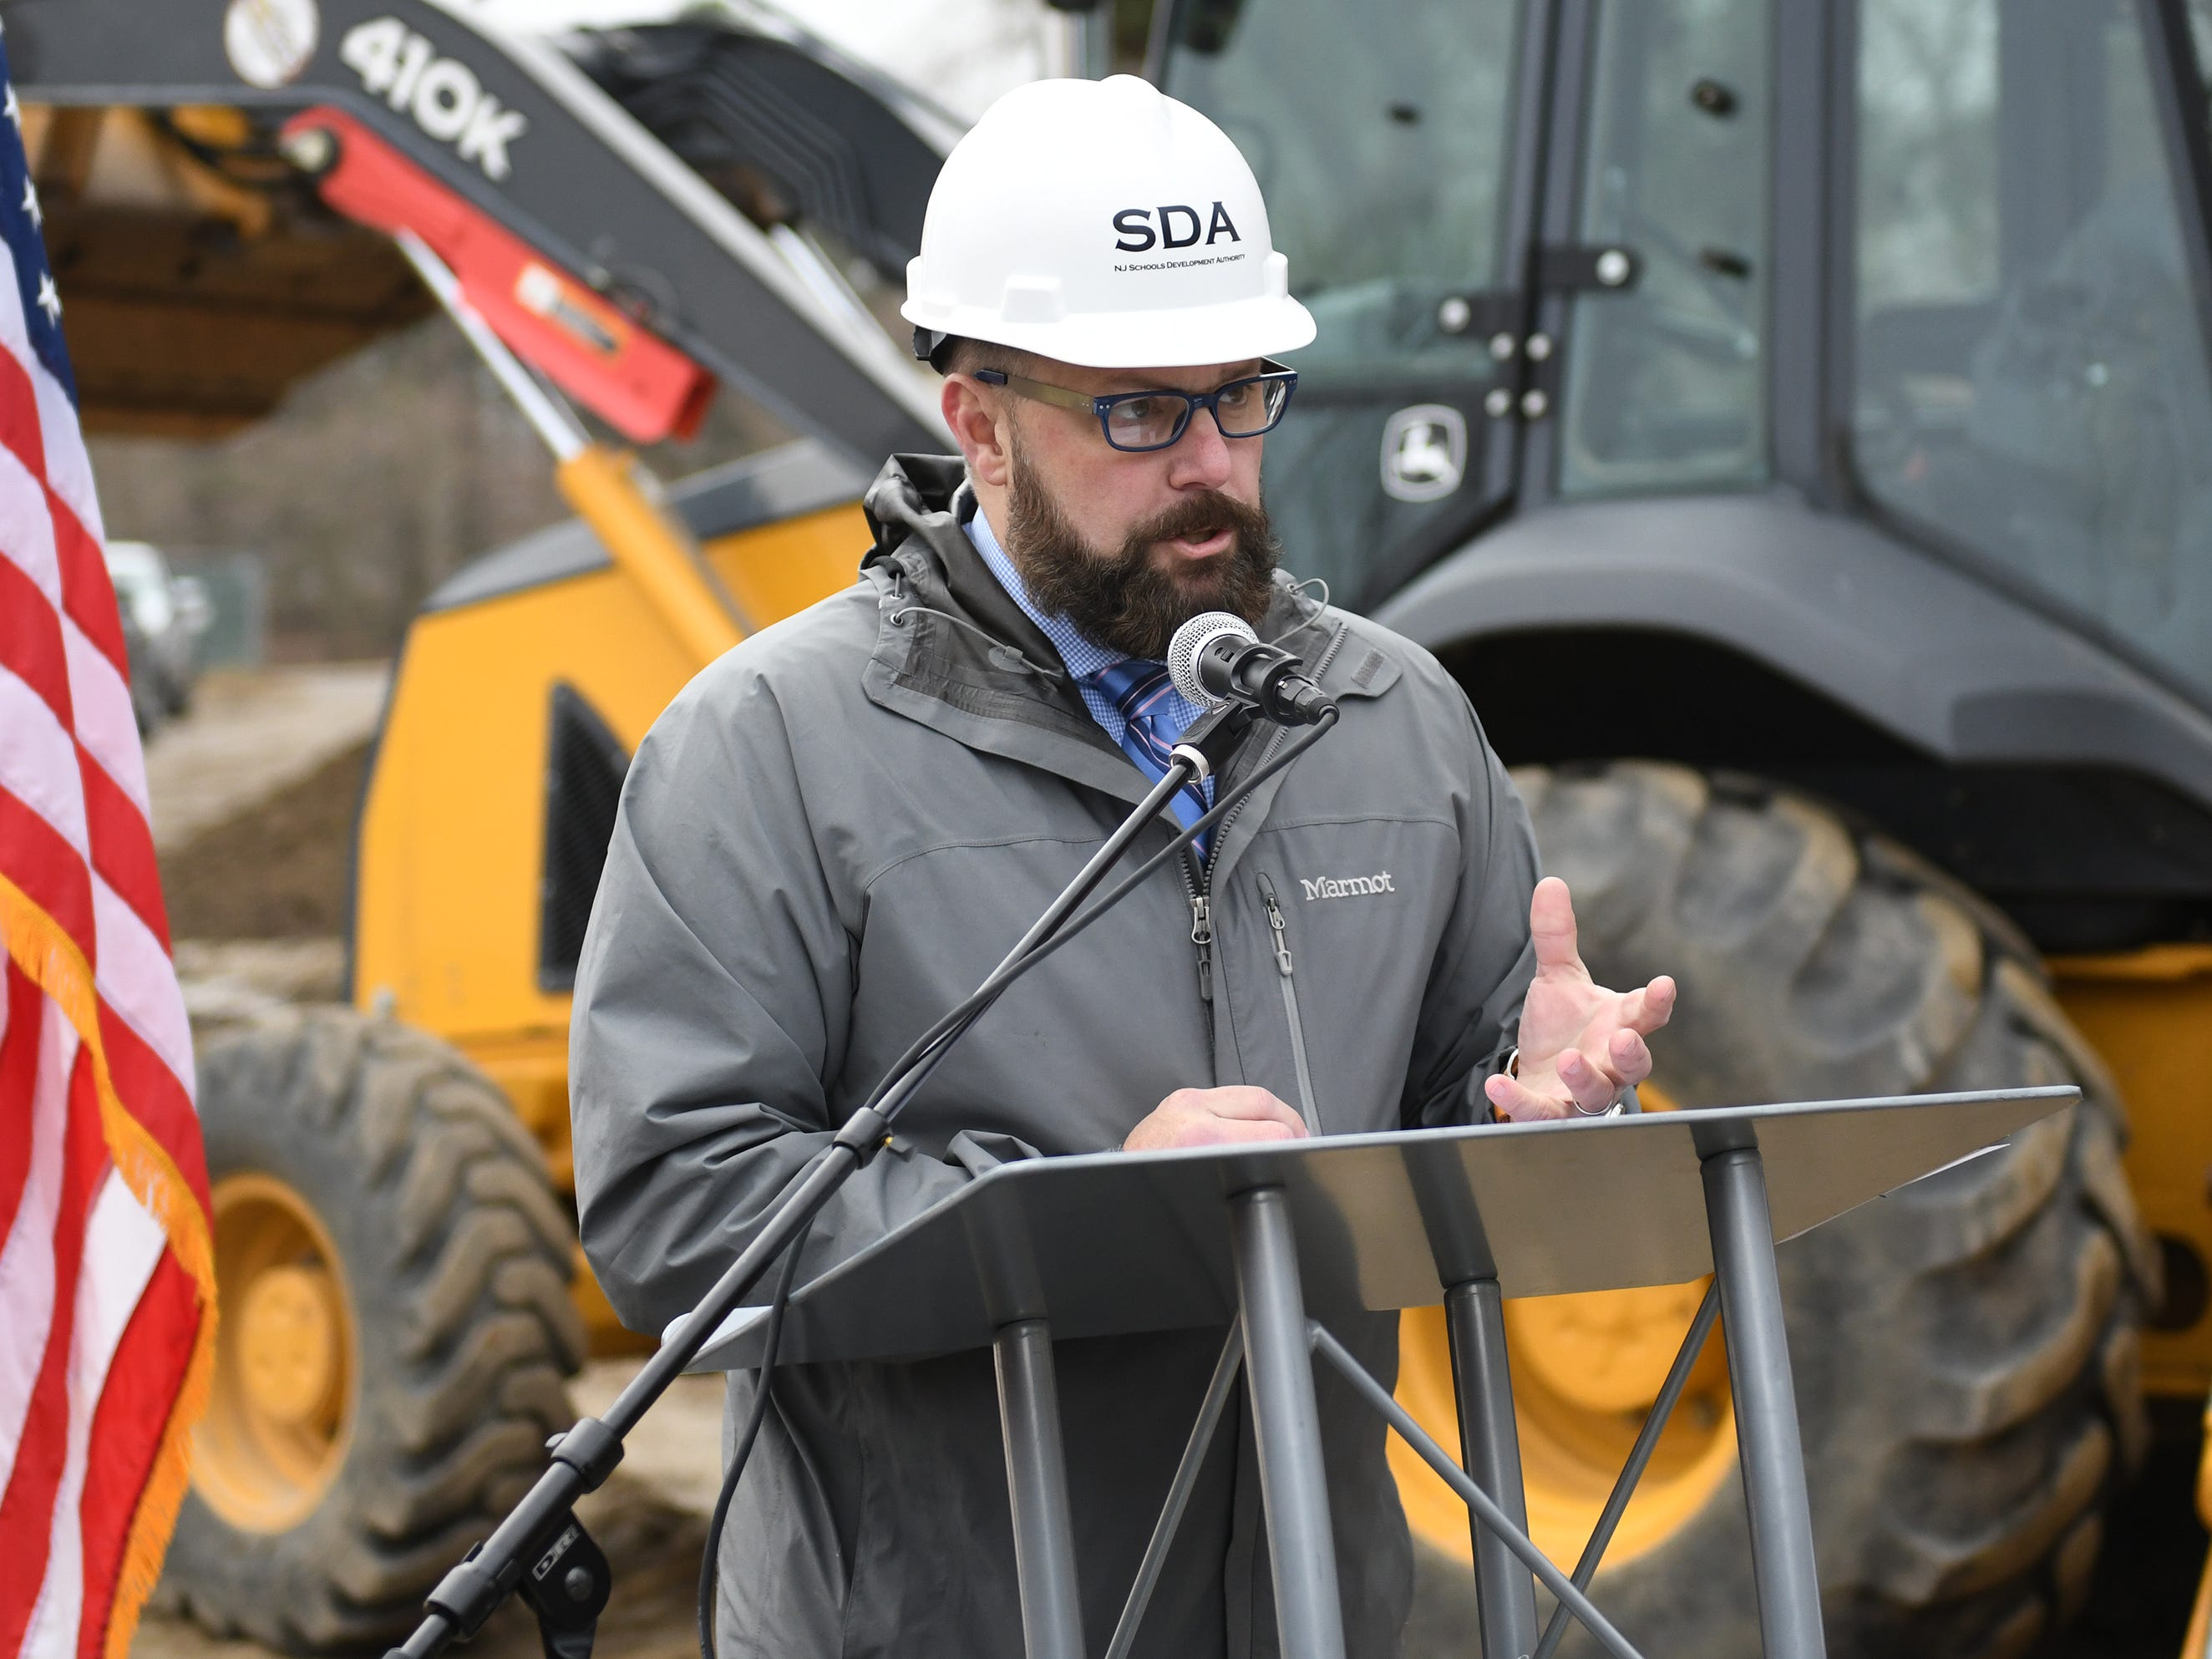 Superintendent David Gentile speaks during the groundbreaking ceremony at Millville High School on Thursday, Feb. 7, 2019.